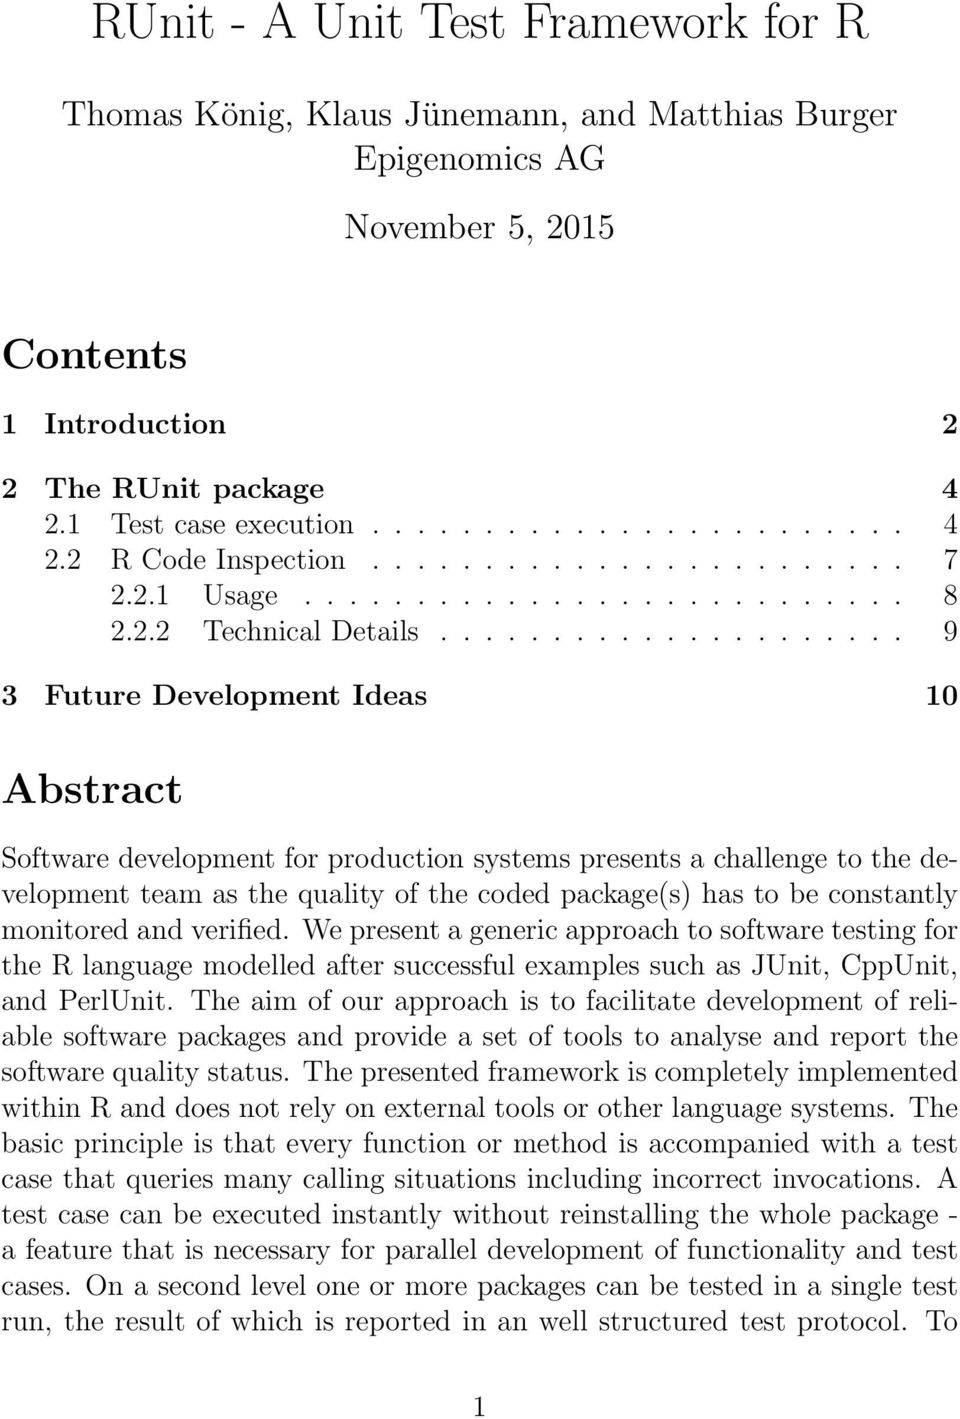 .................... 9 3 Future Development Ideas 10 Abstract Software development for production systems presents a challenge to the development team as the quality of the coded package(s) has to be